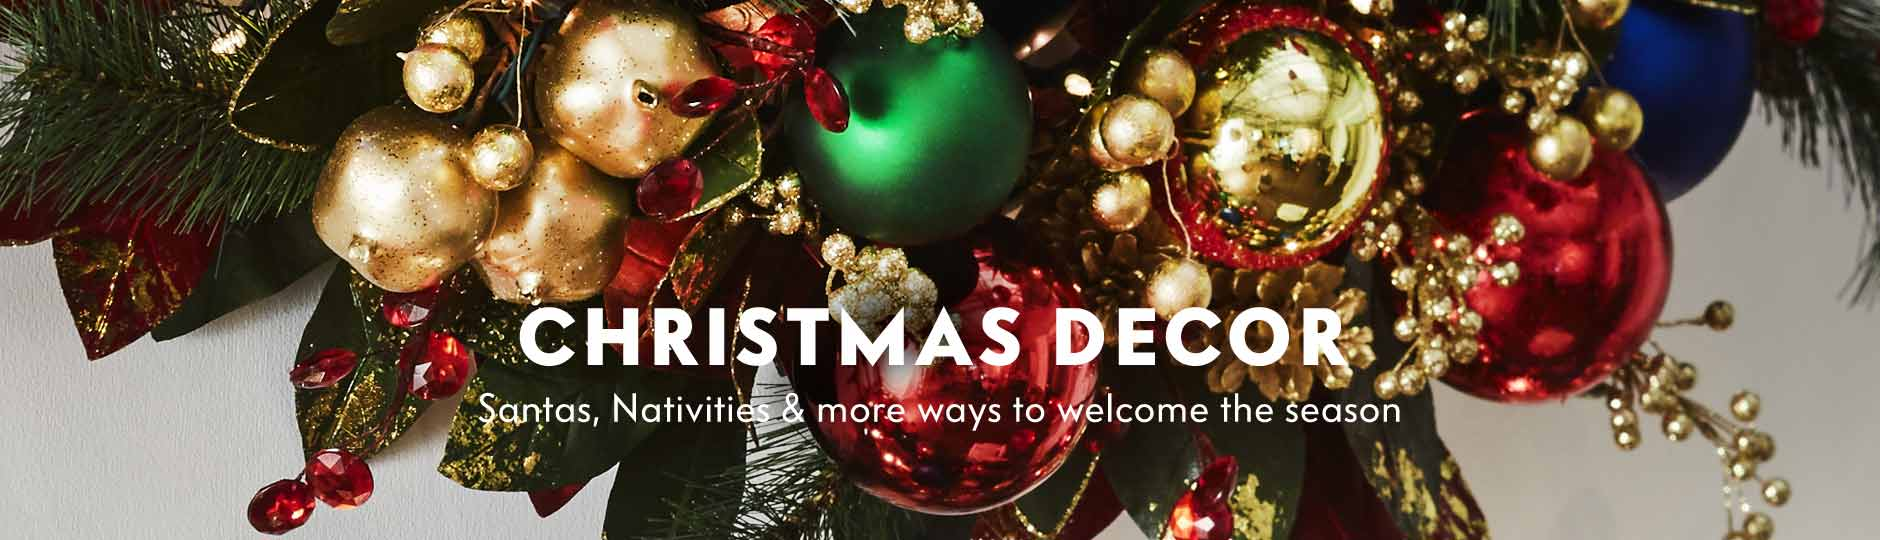 Christmas Decor - Santas, Nativities & more ways to welcome the season